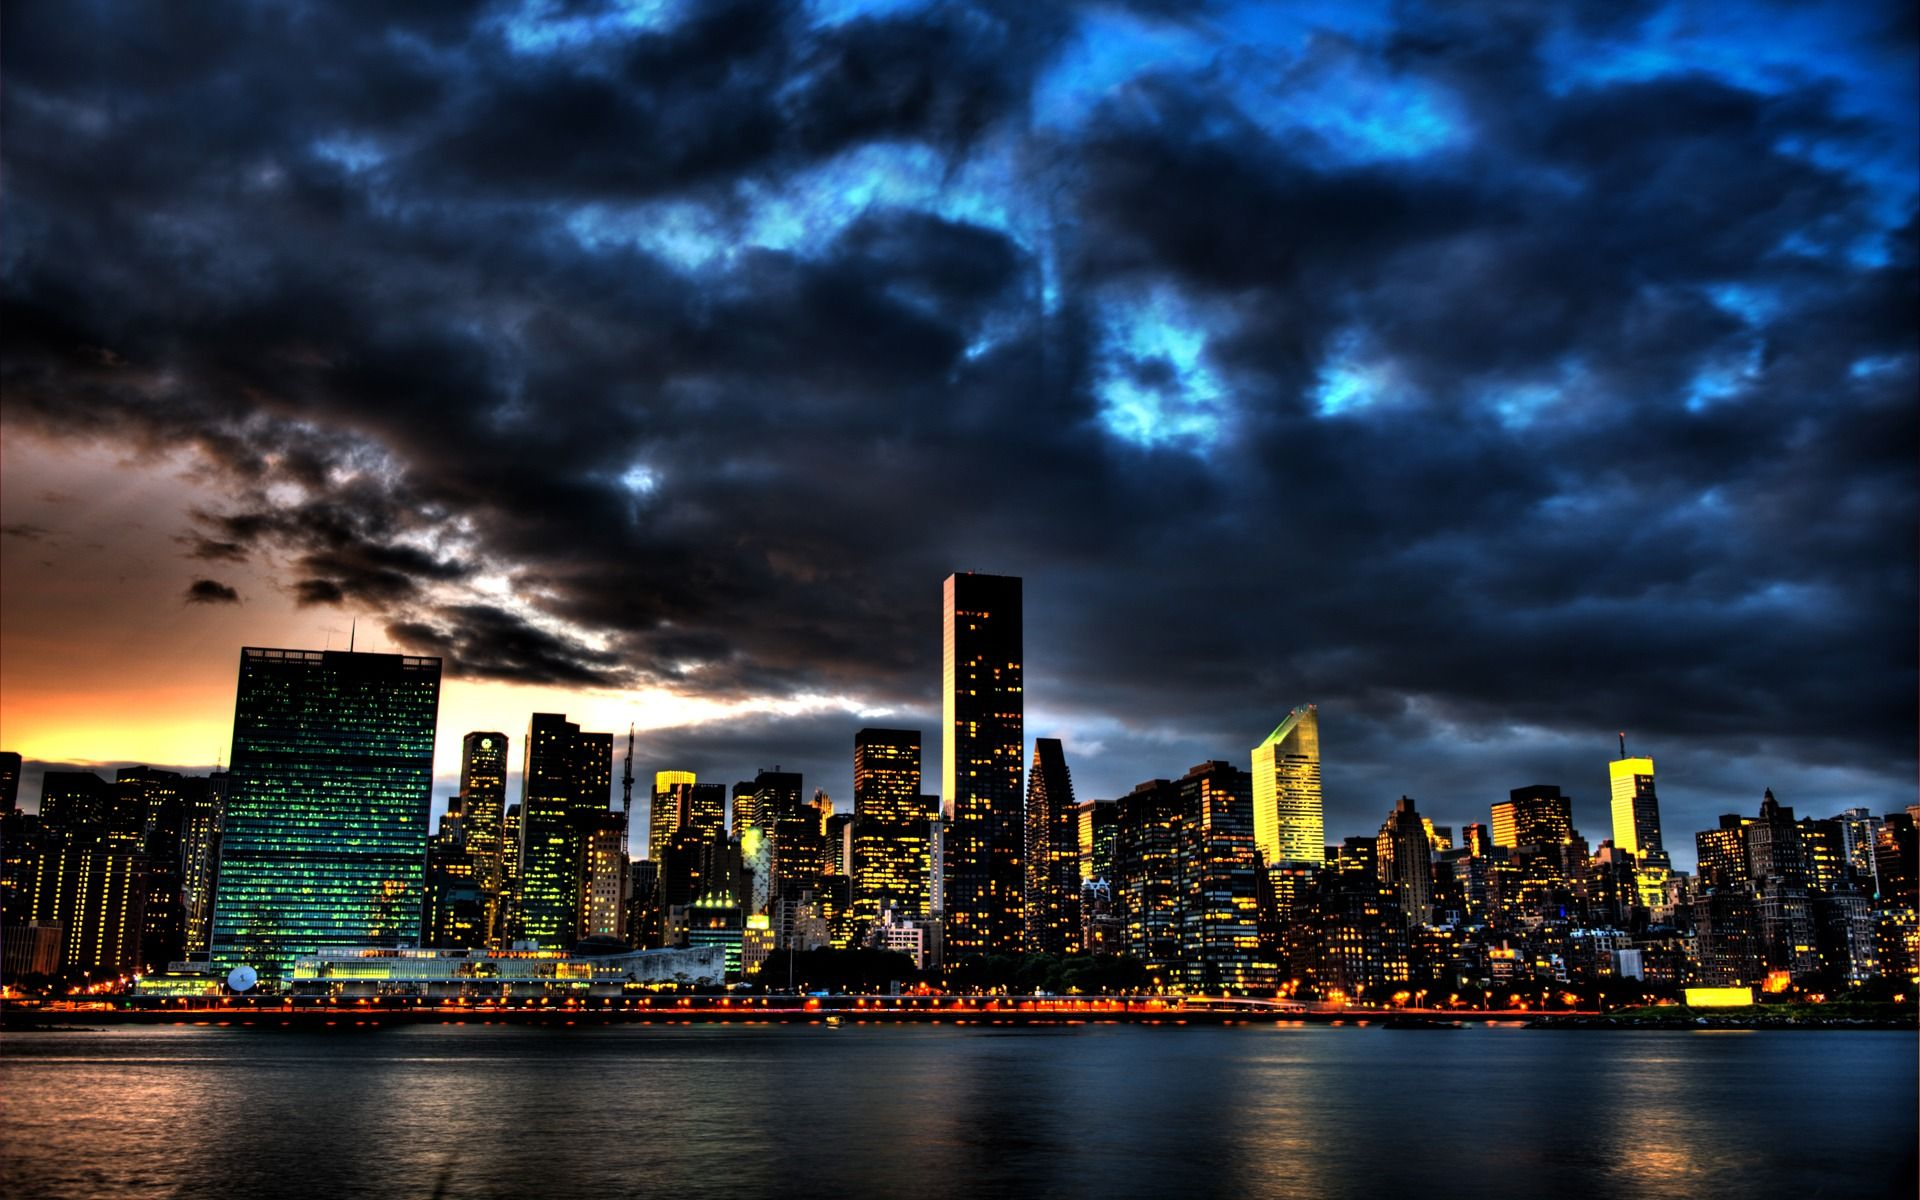 New York Skyline Hd Wallpaper 1080p Wallpaper